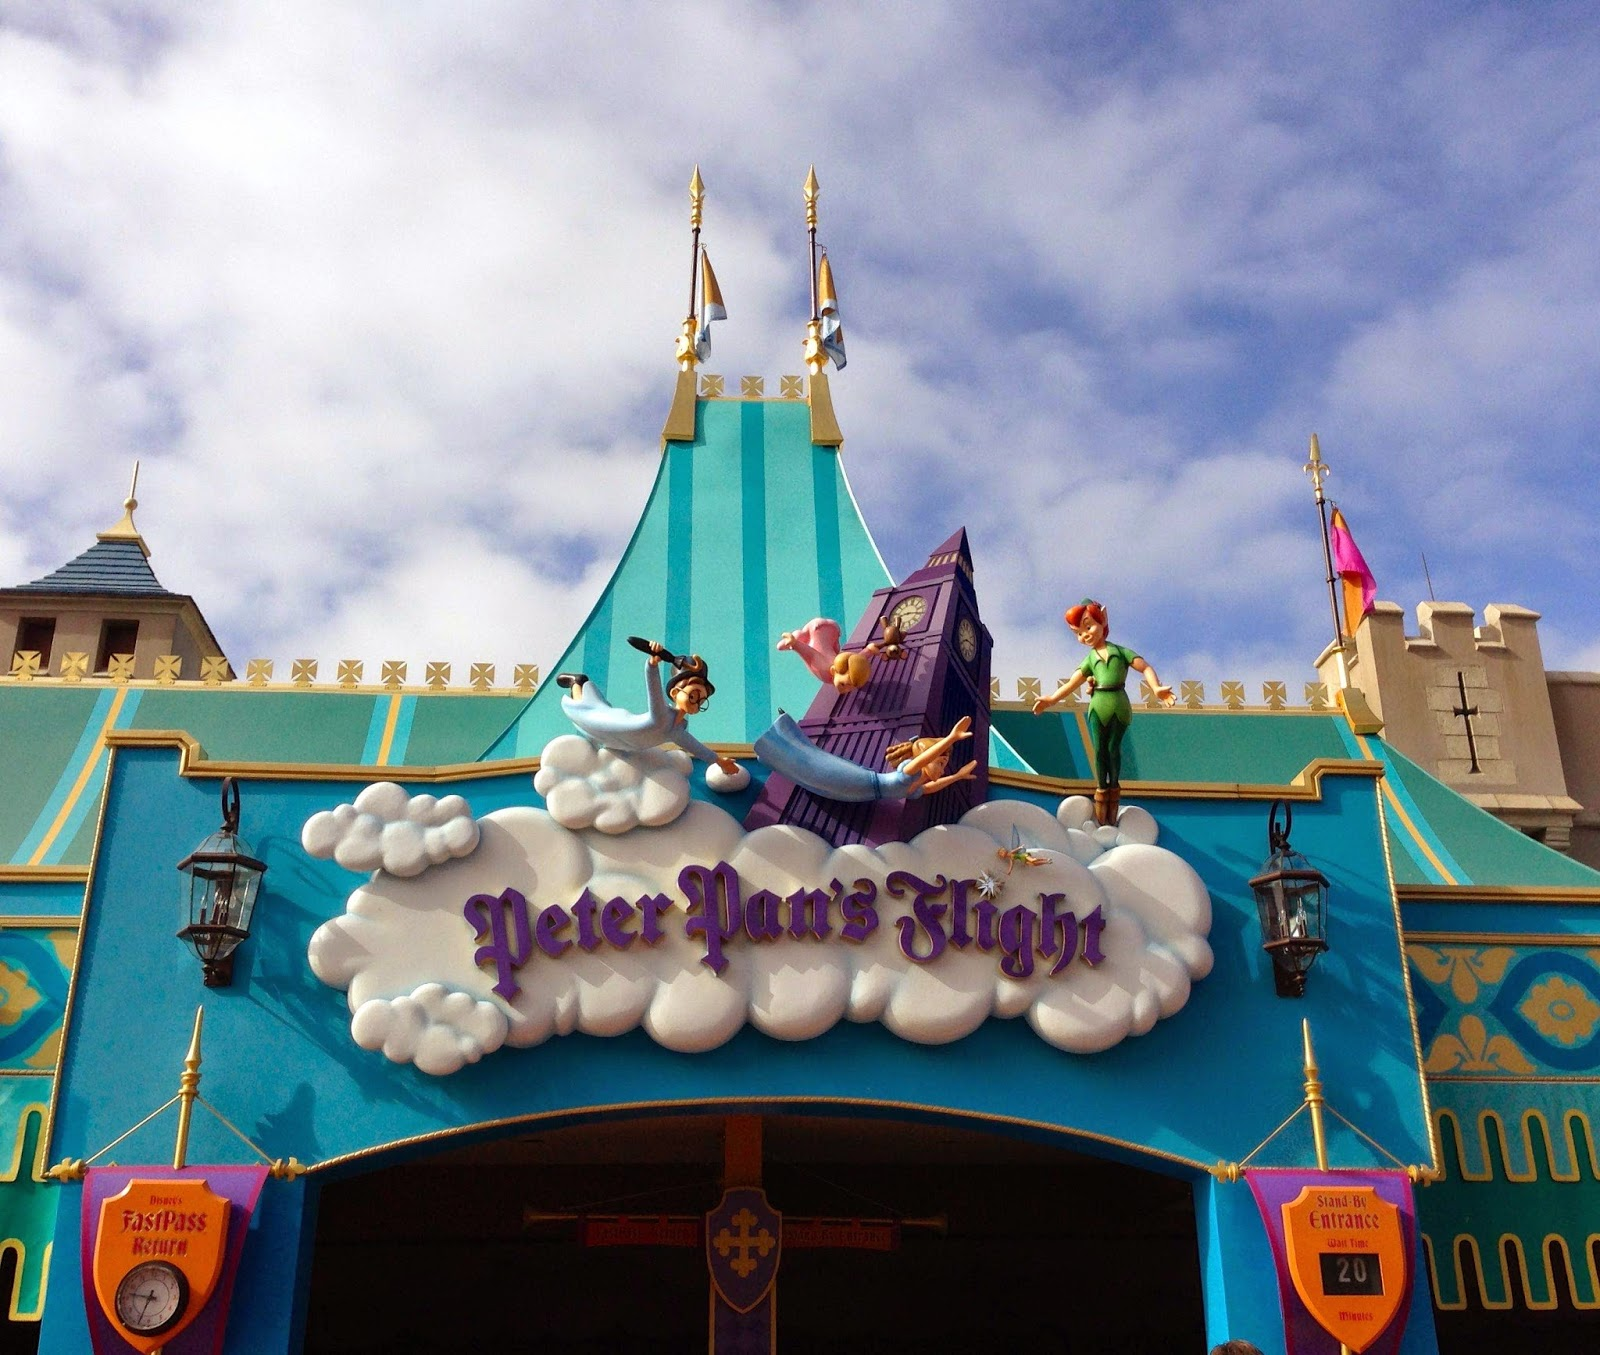 Morgan's Milieu | You Can Fly Too at Peter Pan's Flight in Walt Disney World